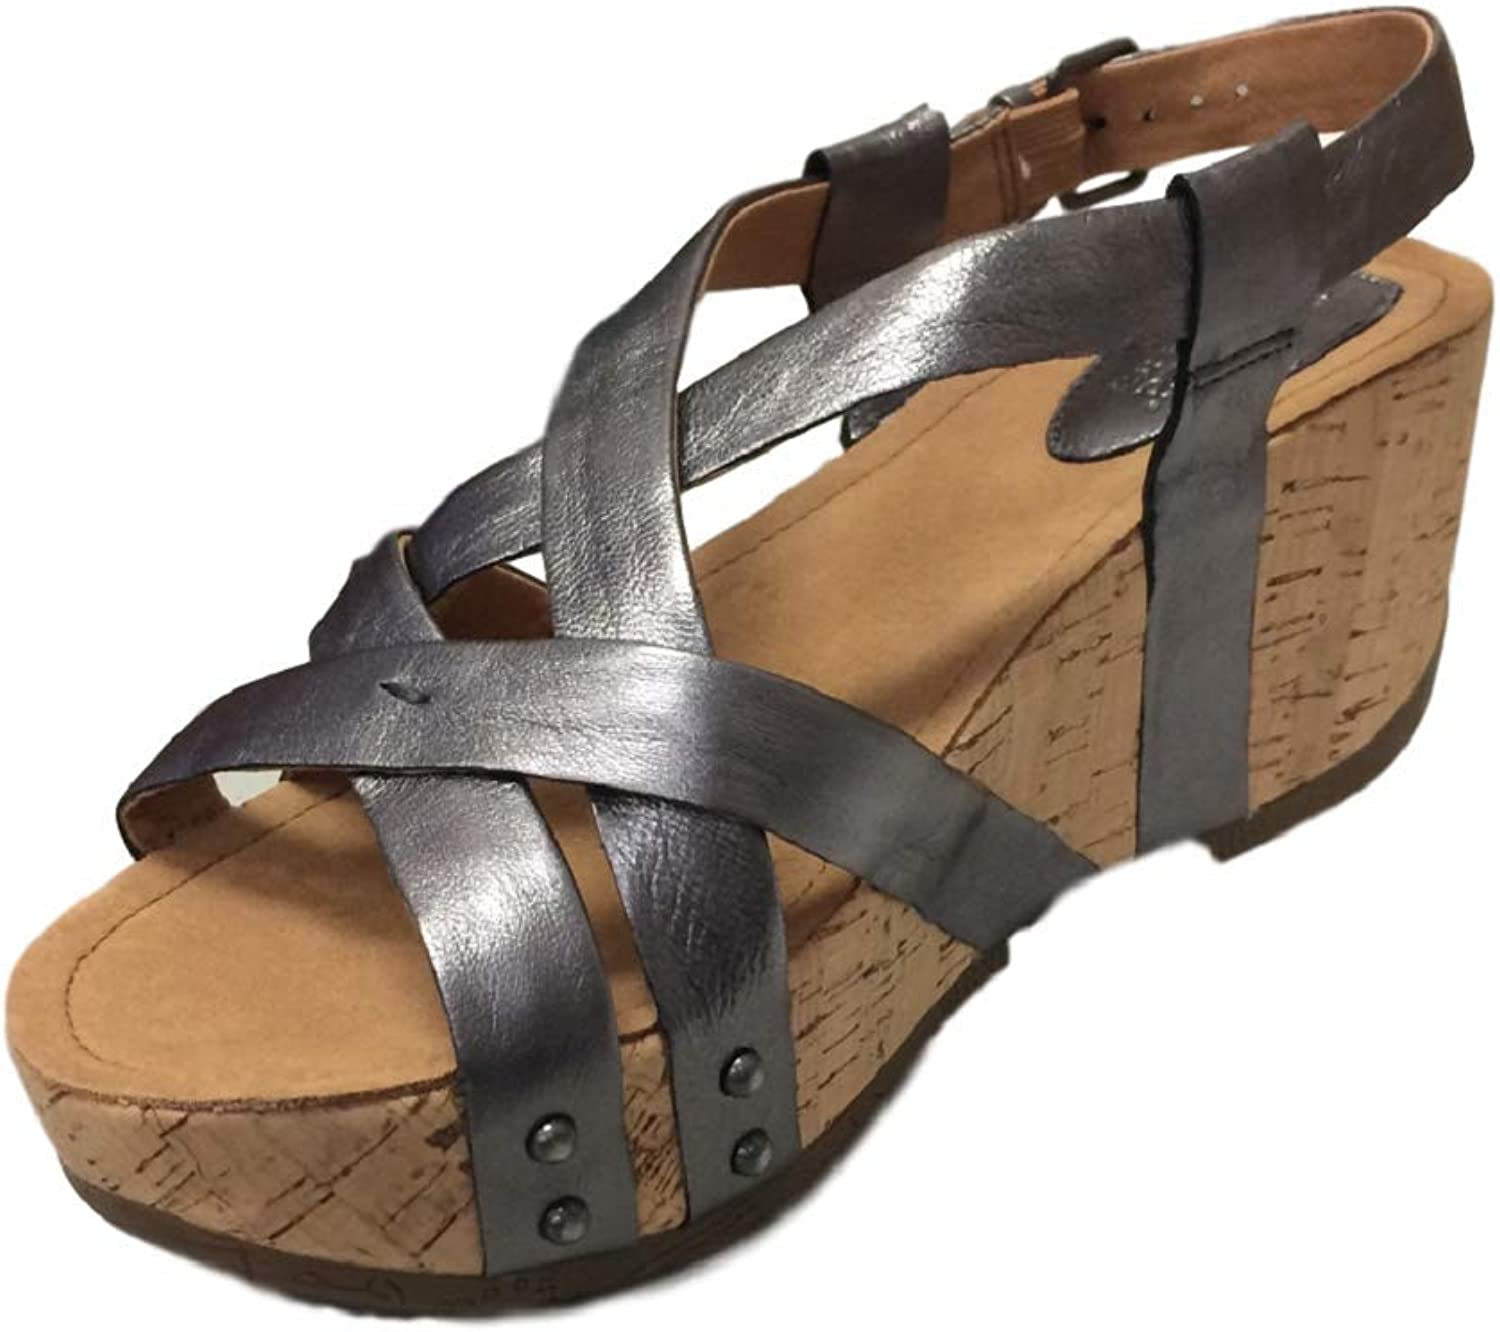 Bussola Bussola Bussola kvinnor Sandals Formäntera Cross Straps Wedge, Fabia Buckle skor, Soft and Stable for Walking  märken online billig försäljning